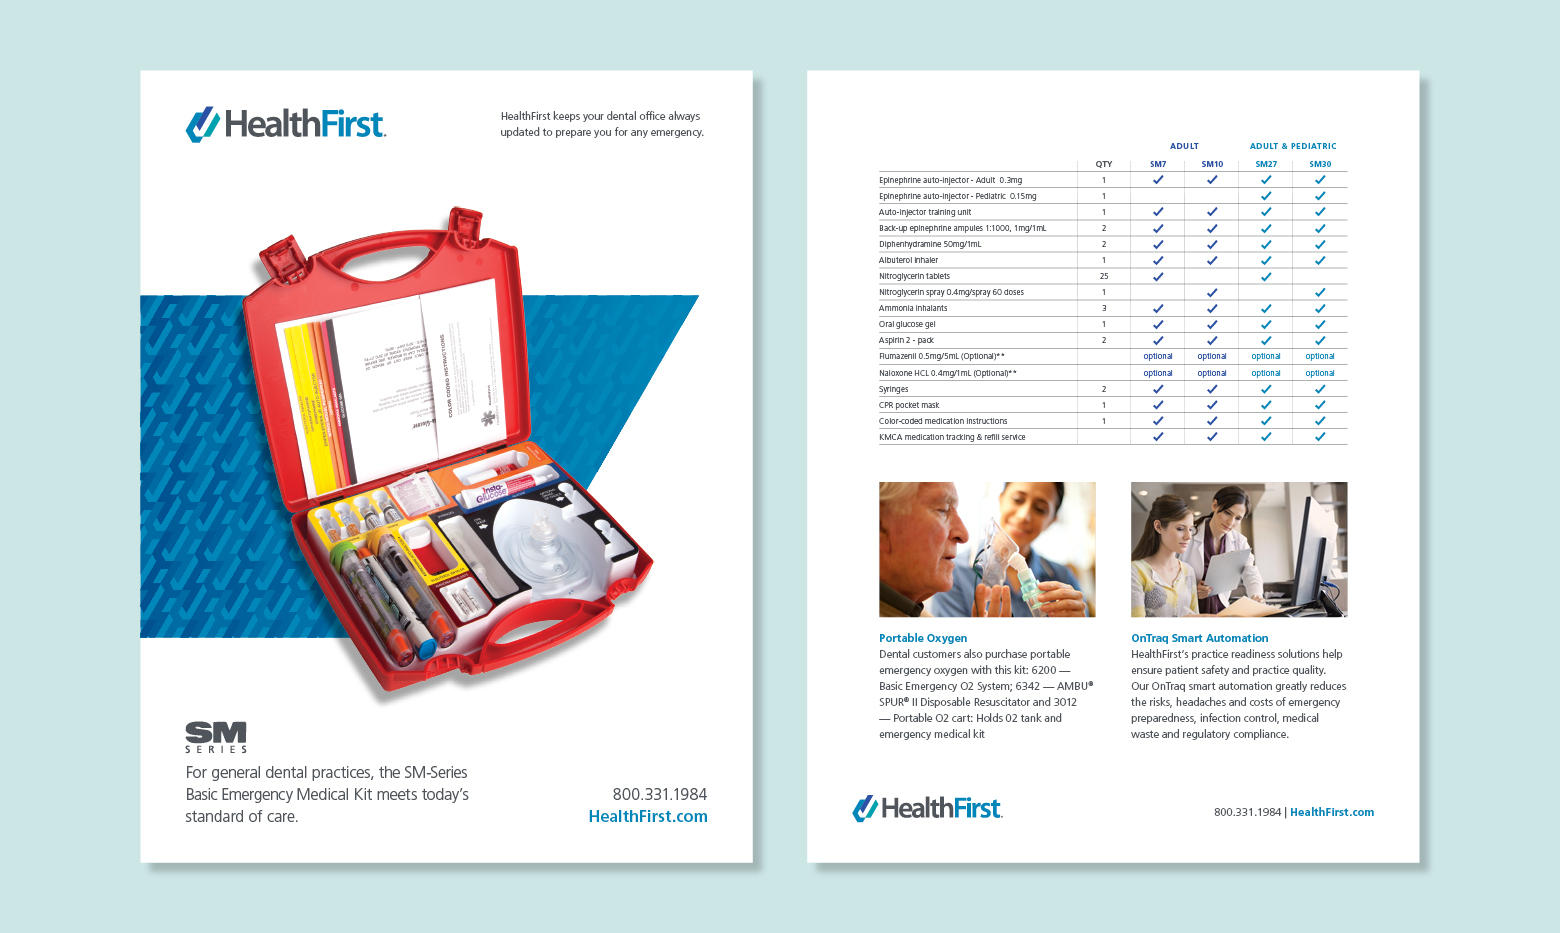 HealthFirst flyer design